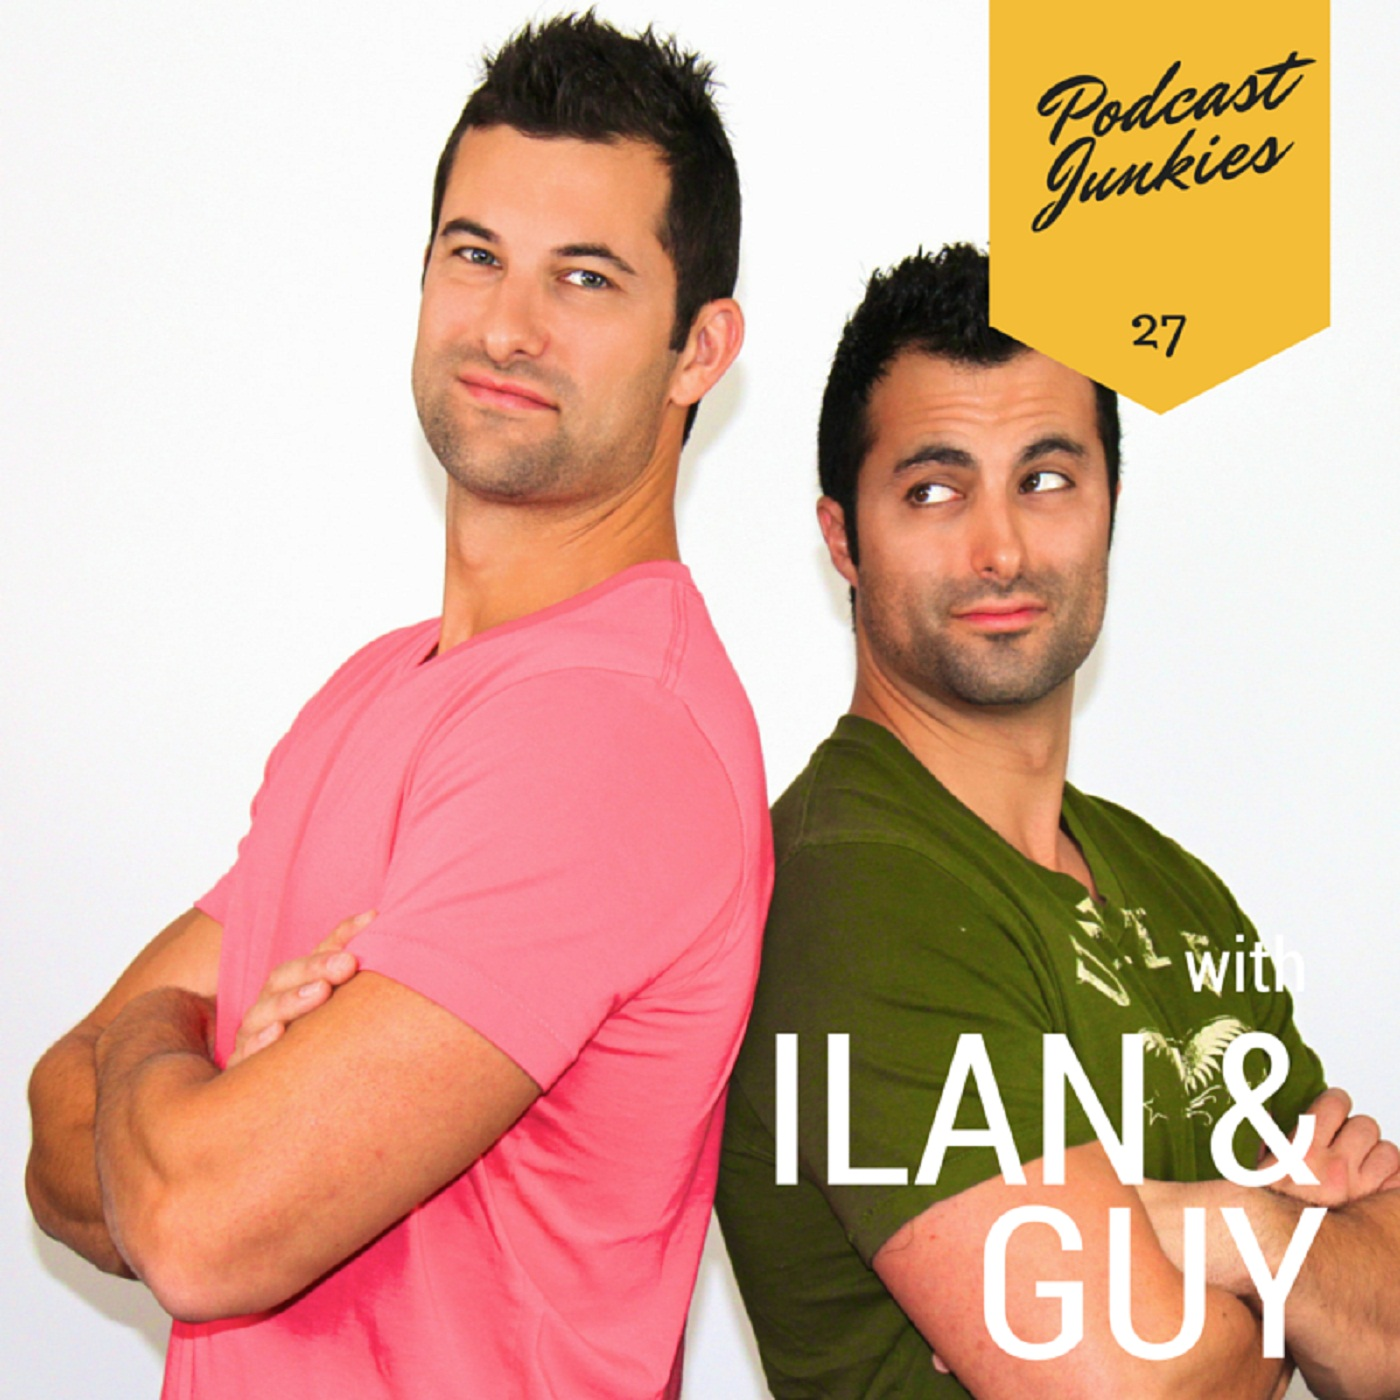 027  Ilan and Guy Ferdman | Ferdman On A Mission To Influence 100 Million People By 2020